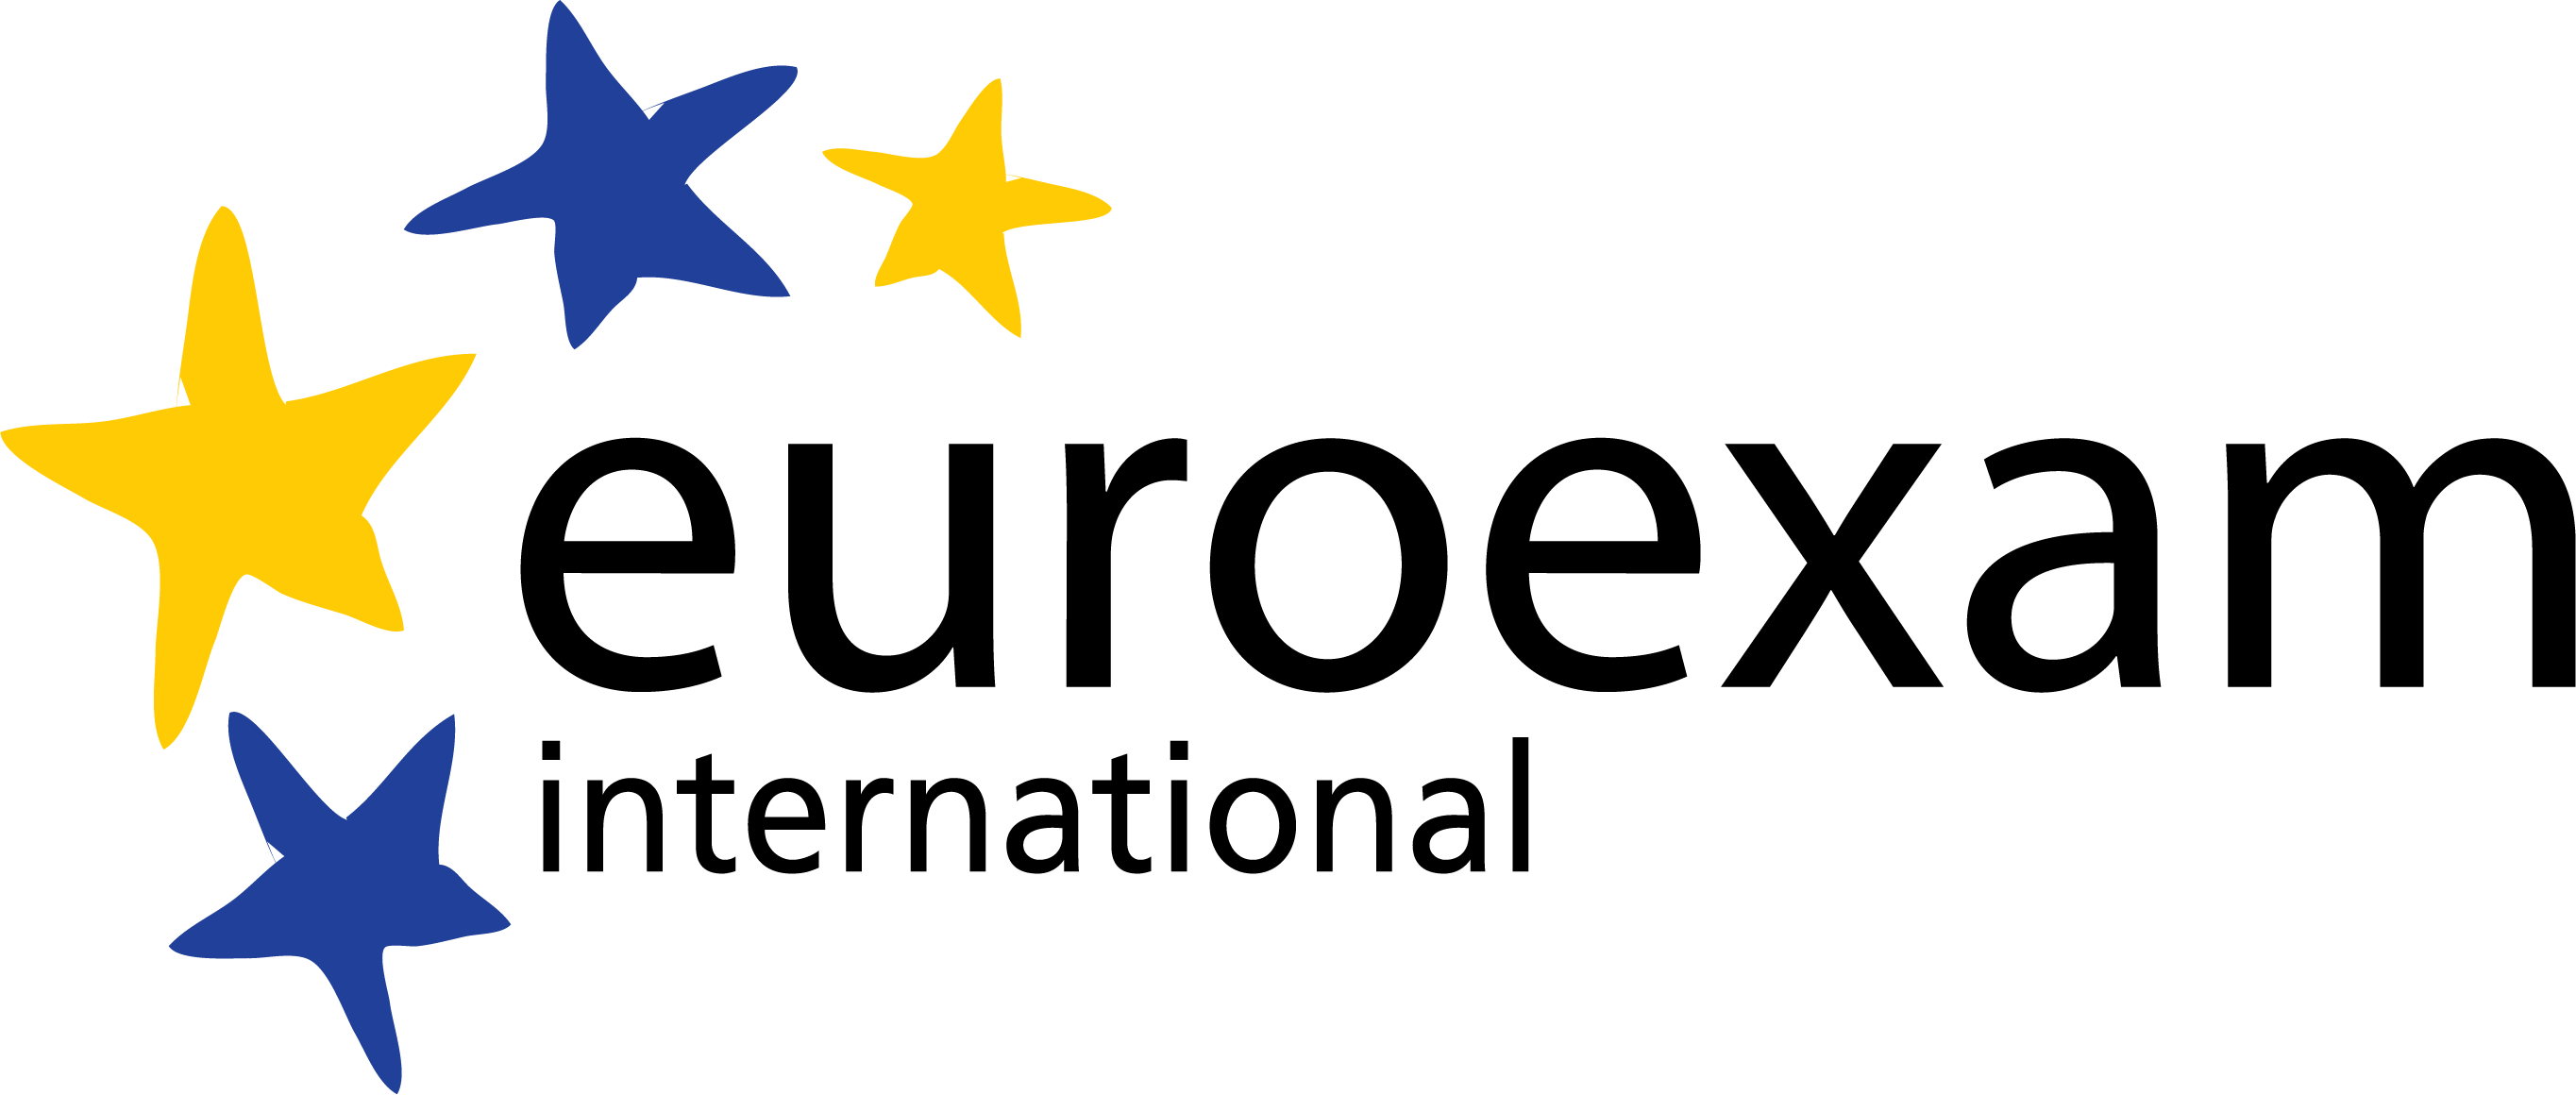 EuroExam INTERNATIONAL LOGO